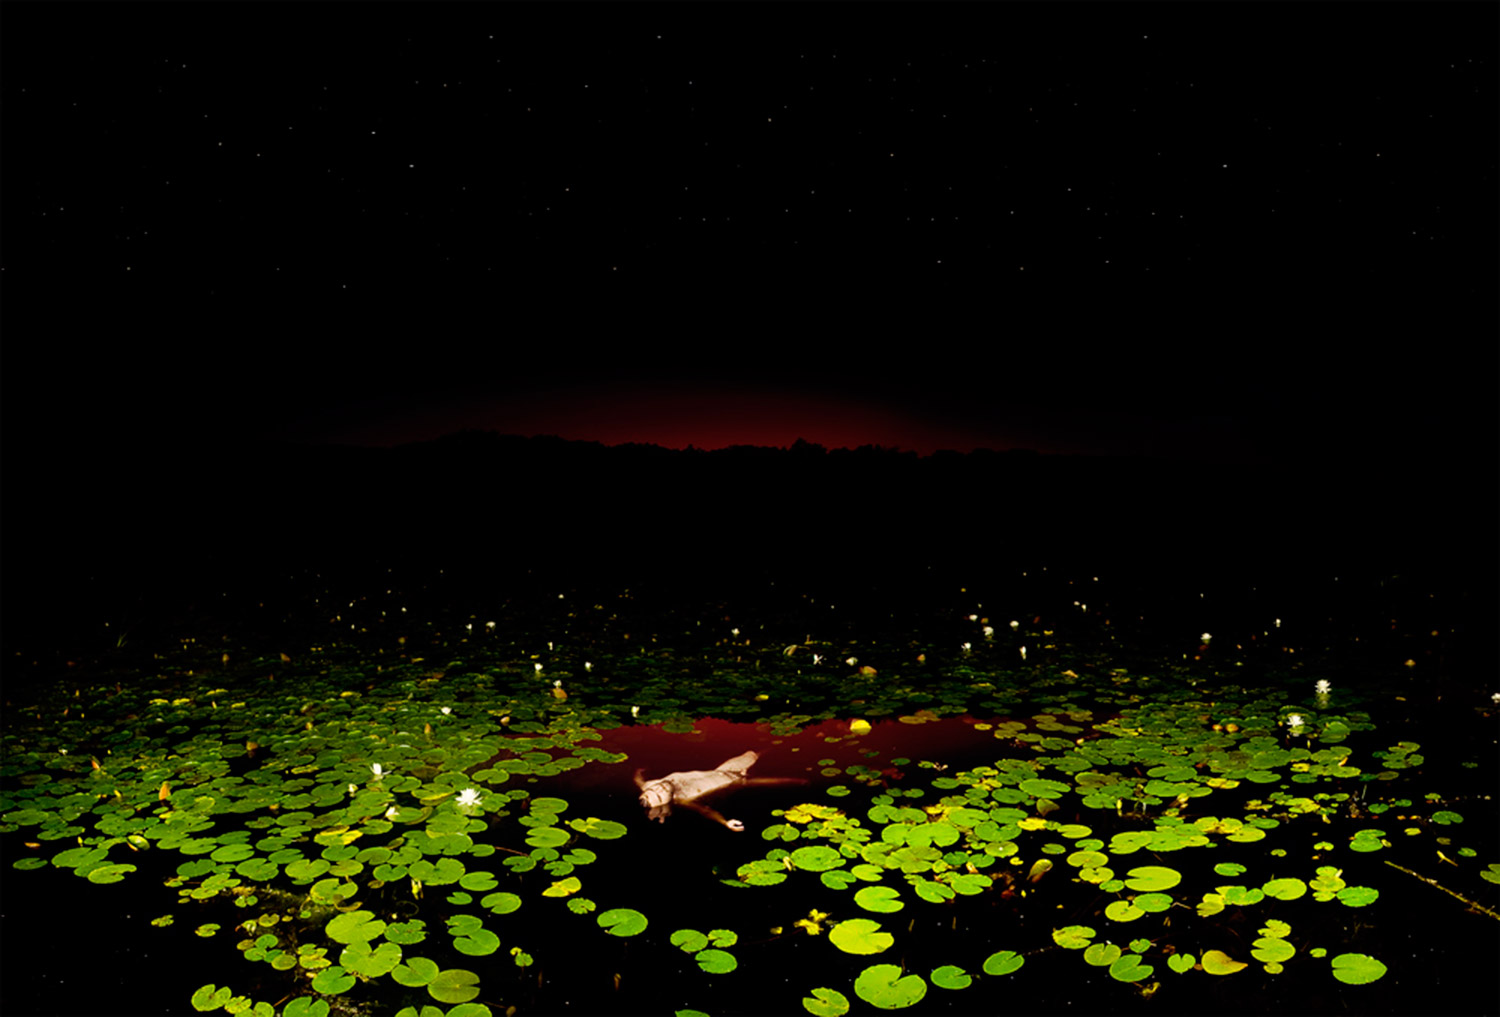 Bear Kirkpatrick, Inside Isaiah God Saw The Worldsheet Burning - figure submerged in pond with lily pads